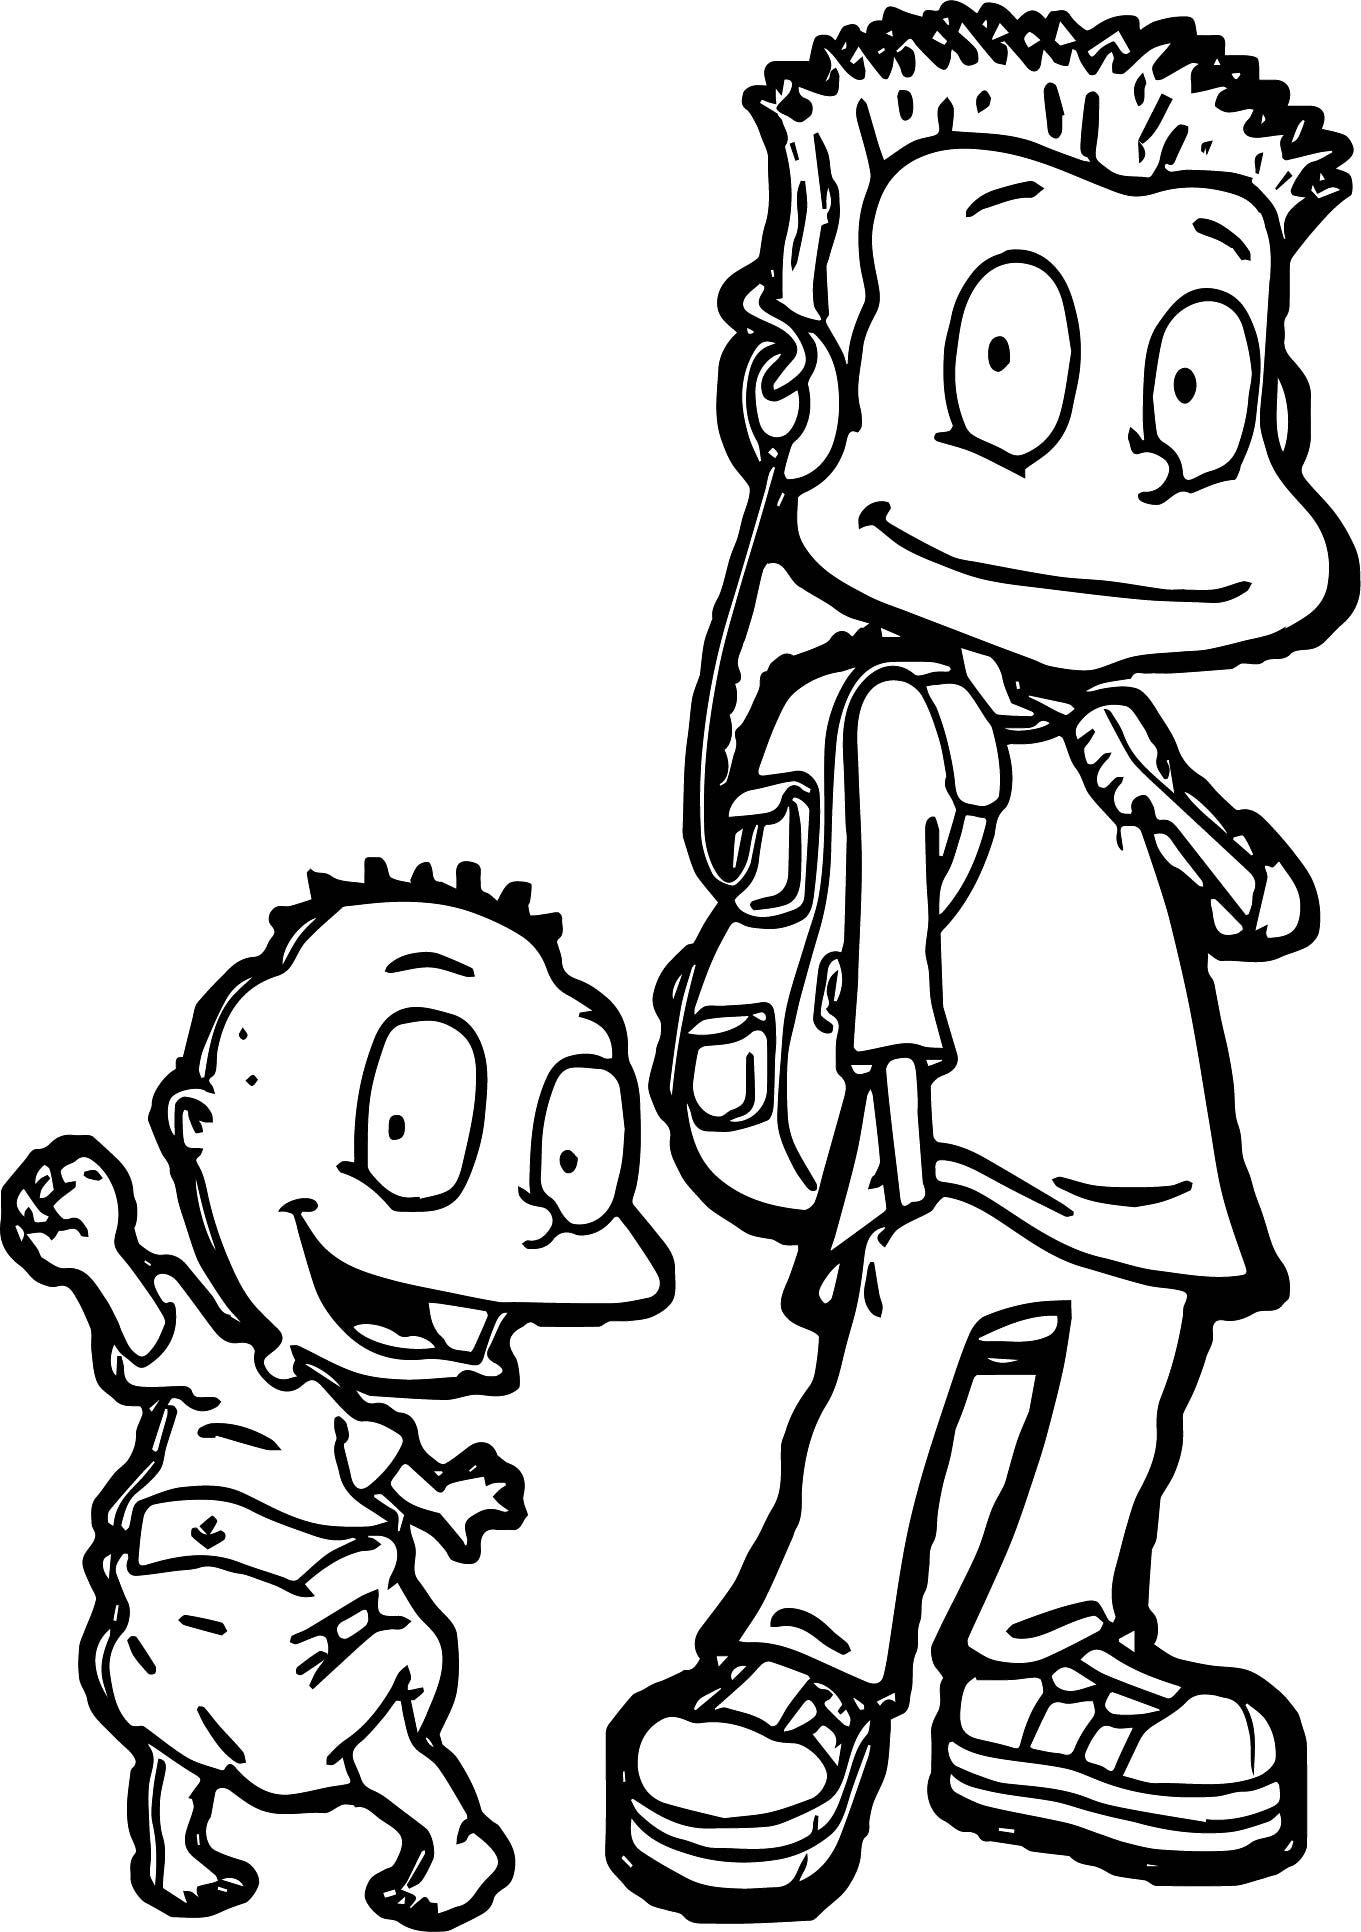 Tommy Pickles Coloring Page | Pickles